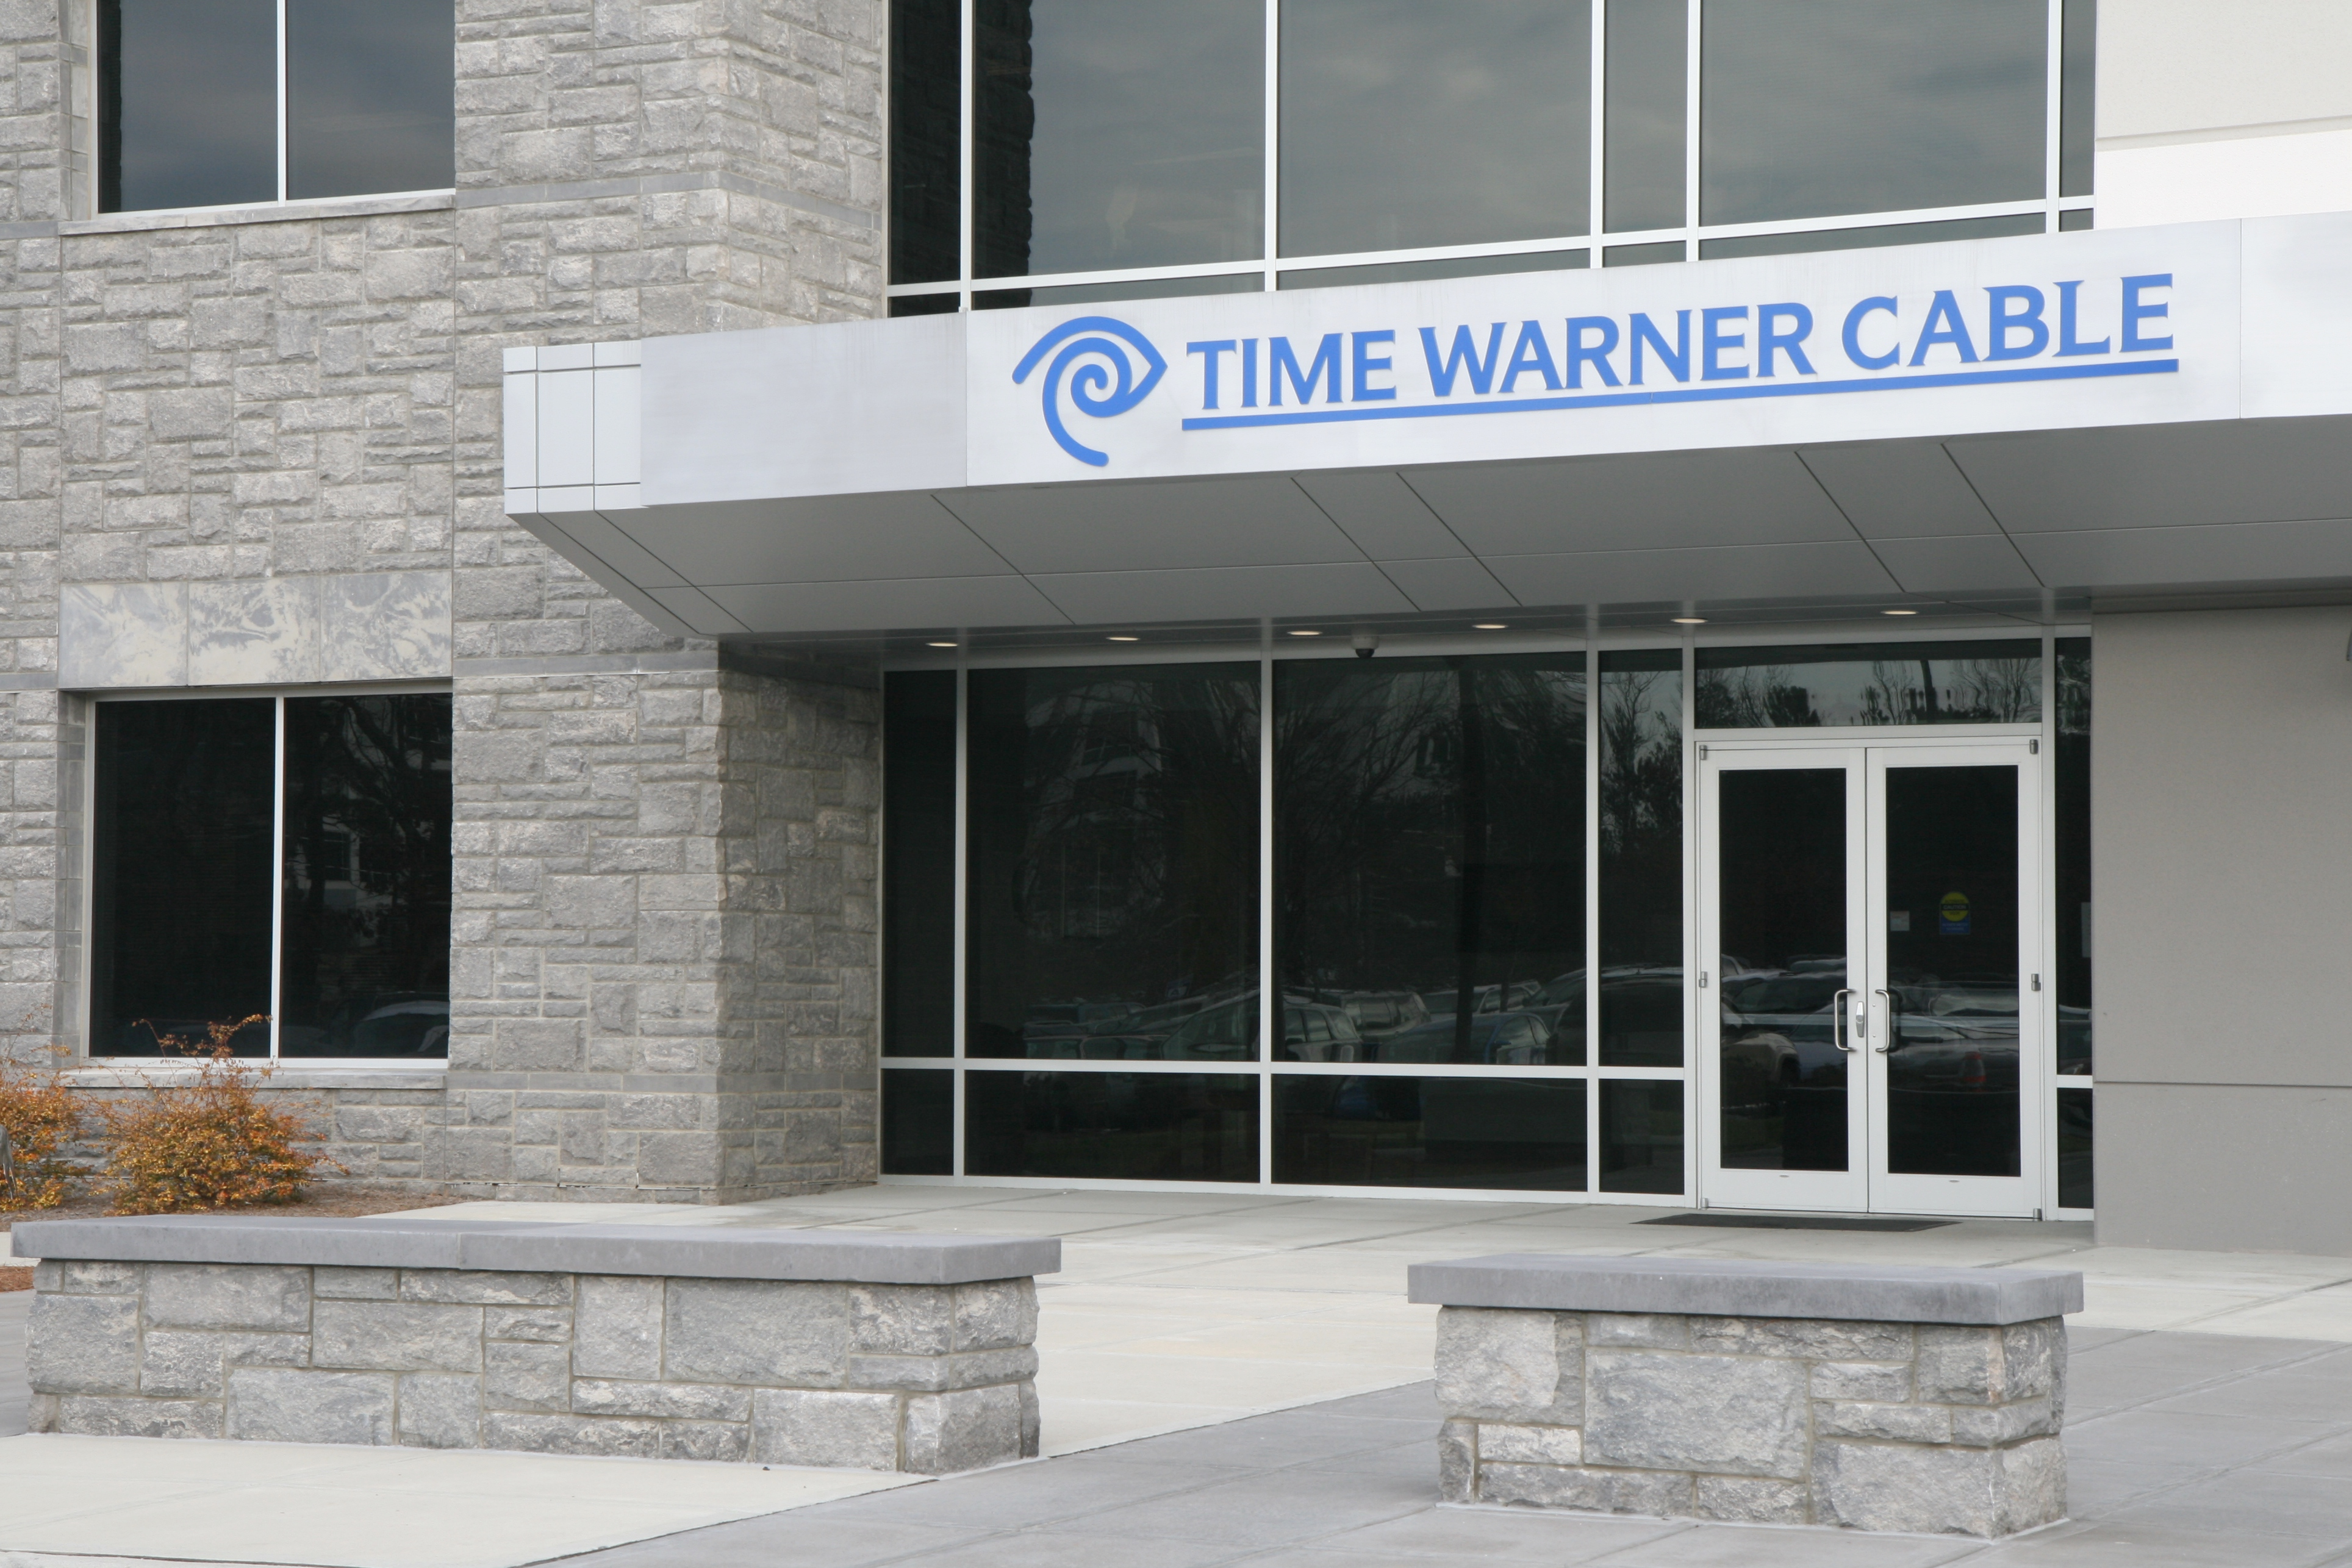 Comcast to Acquire Time Warner Cable for $44.2b